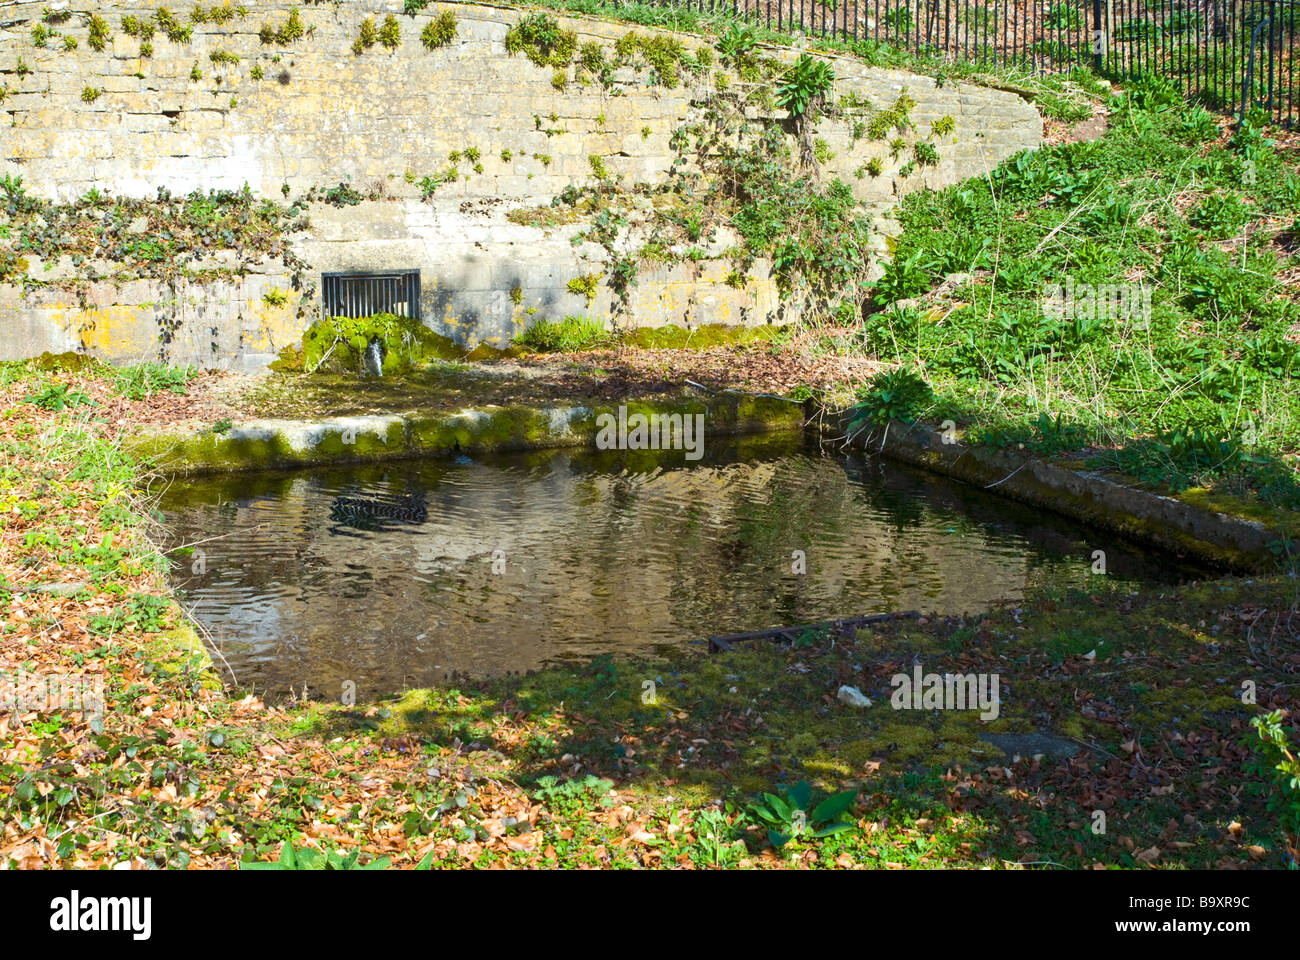 Fair Rosamund's Well in the Park at Blenheim Palace, Oxfordshire, England - Stock Image